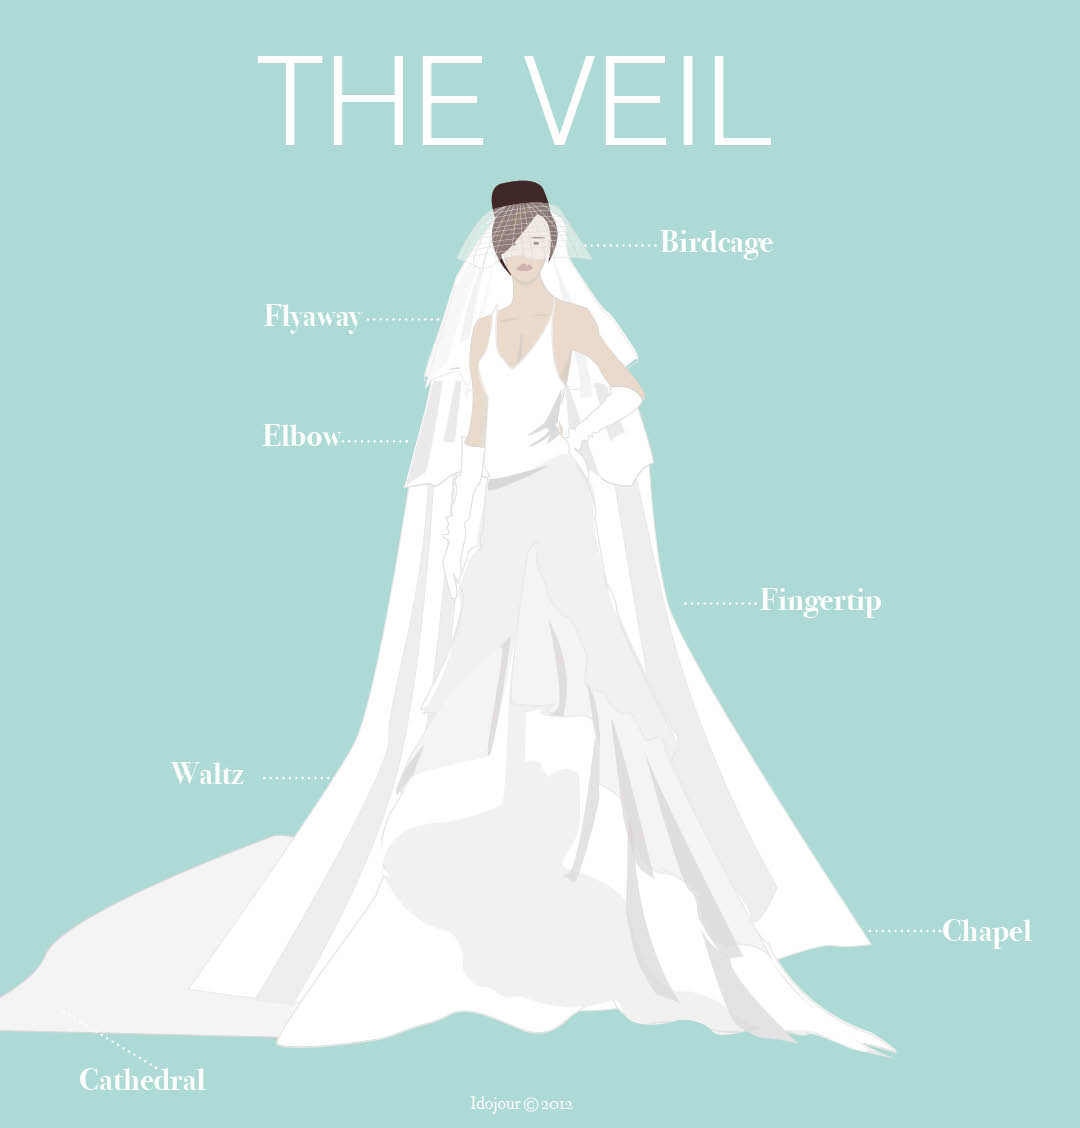 Wedding Veils: Which is Your Style?